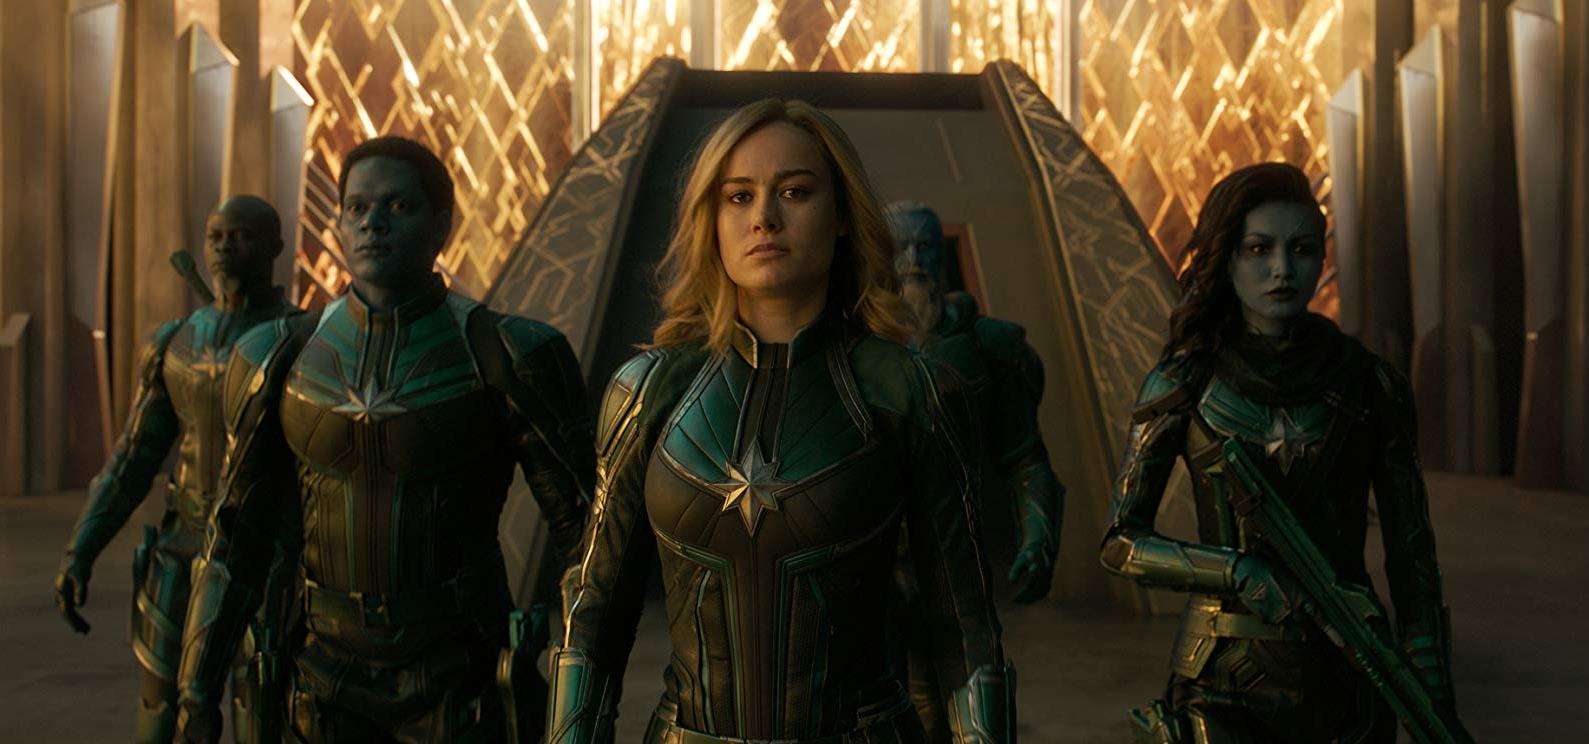 The Kree Star Force - (l to r) Korath (Djimon Hounsou), Alt-Lass (Algenis Perez Soto), Vers (Brie Larson), Bron Char (Rune Temte) and Minn-Erva (Gemma Chan) in Captain Marvel (2019)